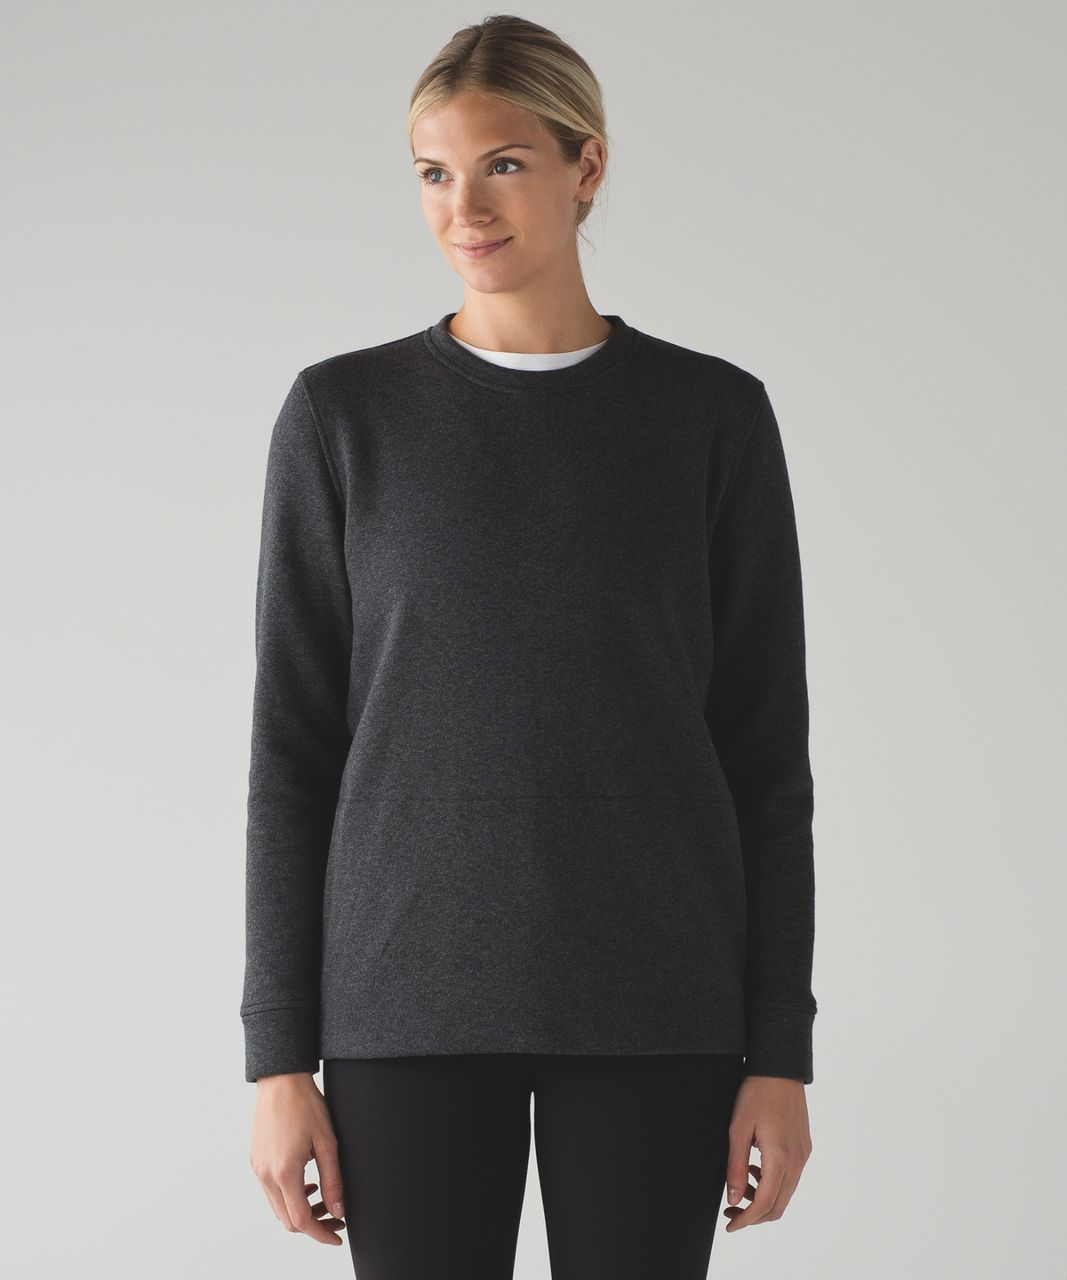 Lululemon Yes Fleece Pullover - Heathered Black / Black - lulu ...